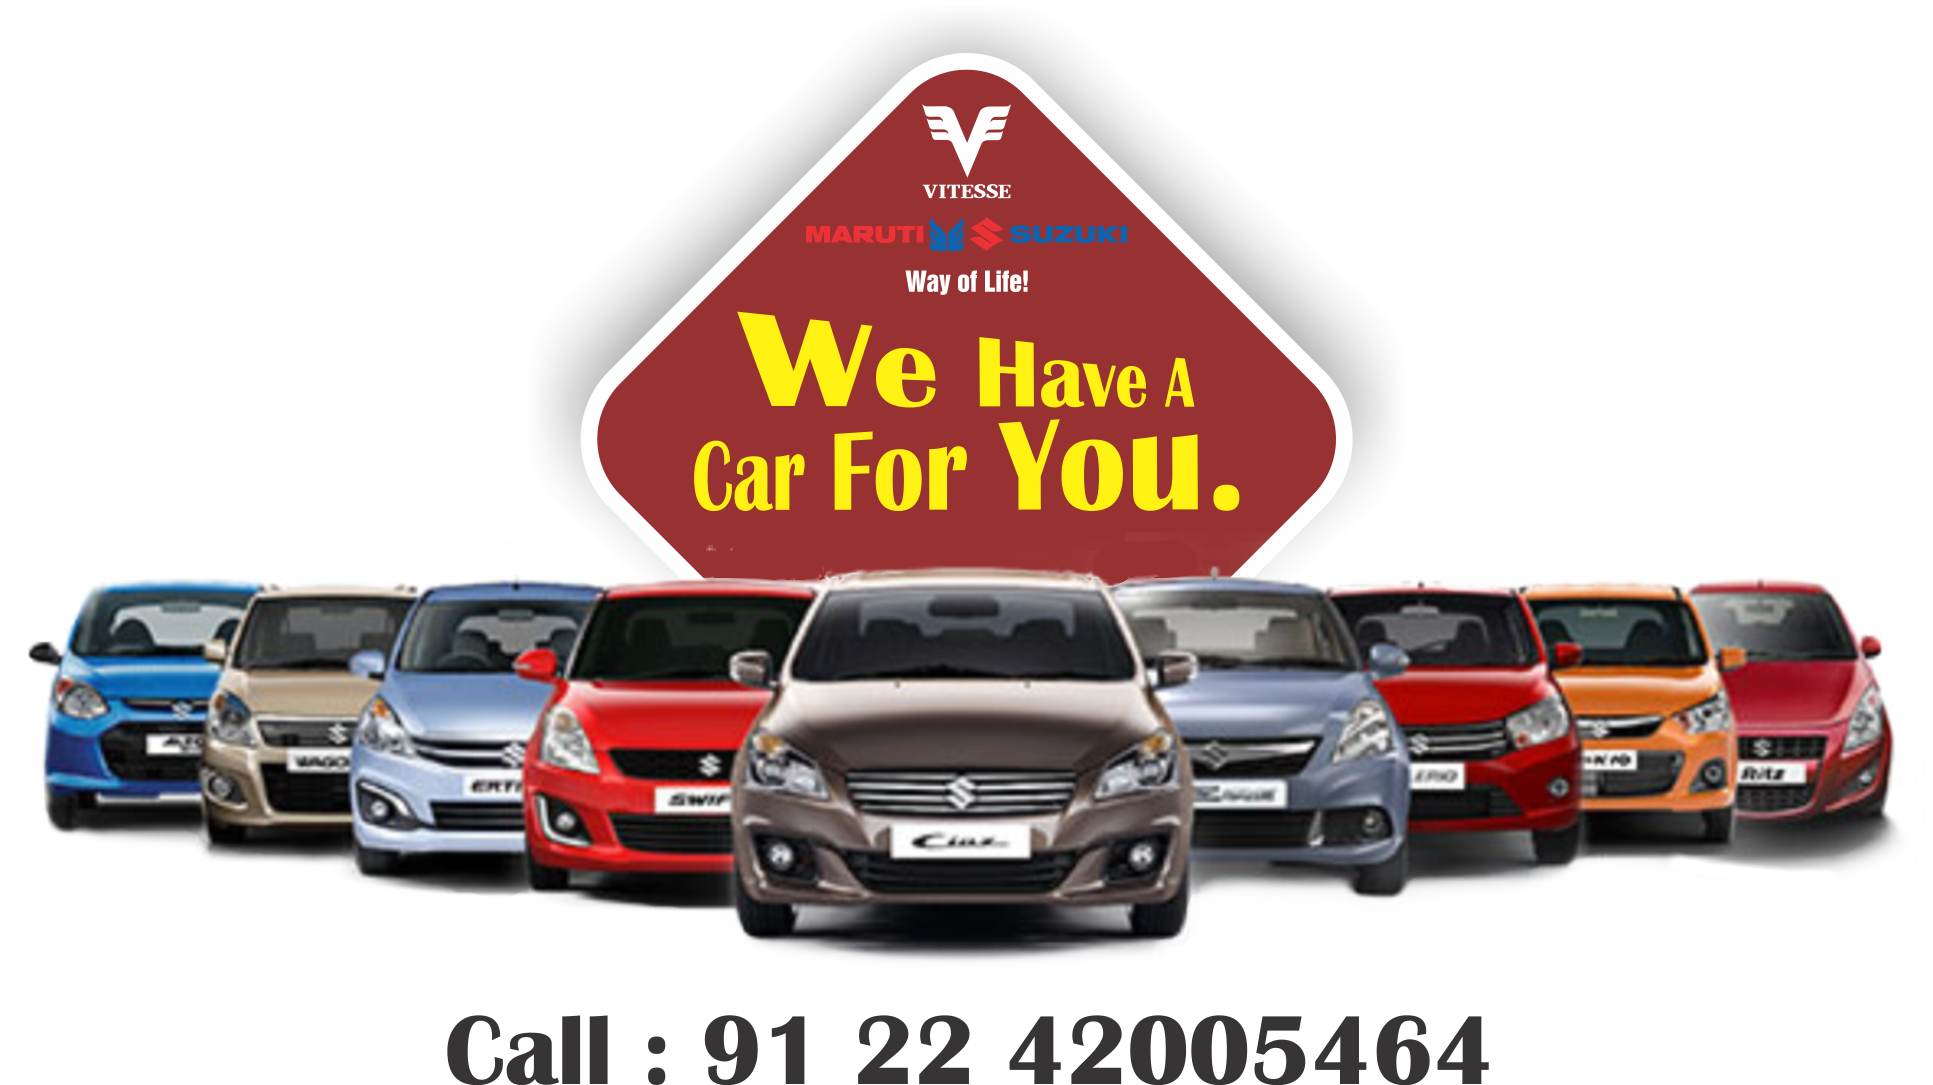 We don't sell cars. We help people buy them. Welcome to Maruti Vitesse. The Most Trusted & Oldest Maruti Dealership. 33 Years of Trust & Service.